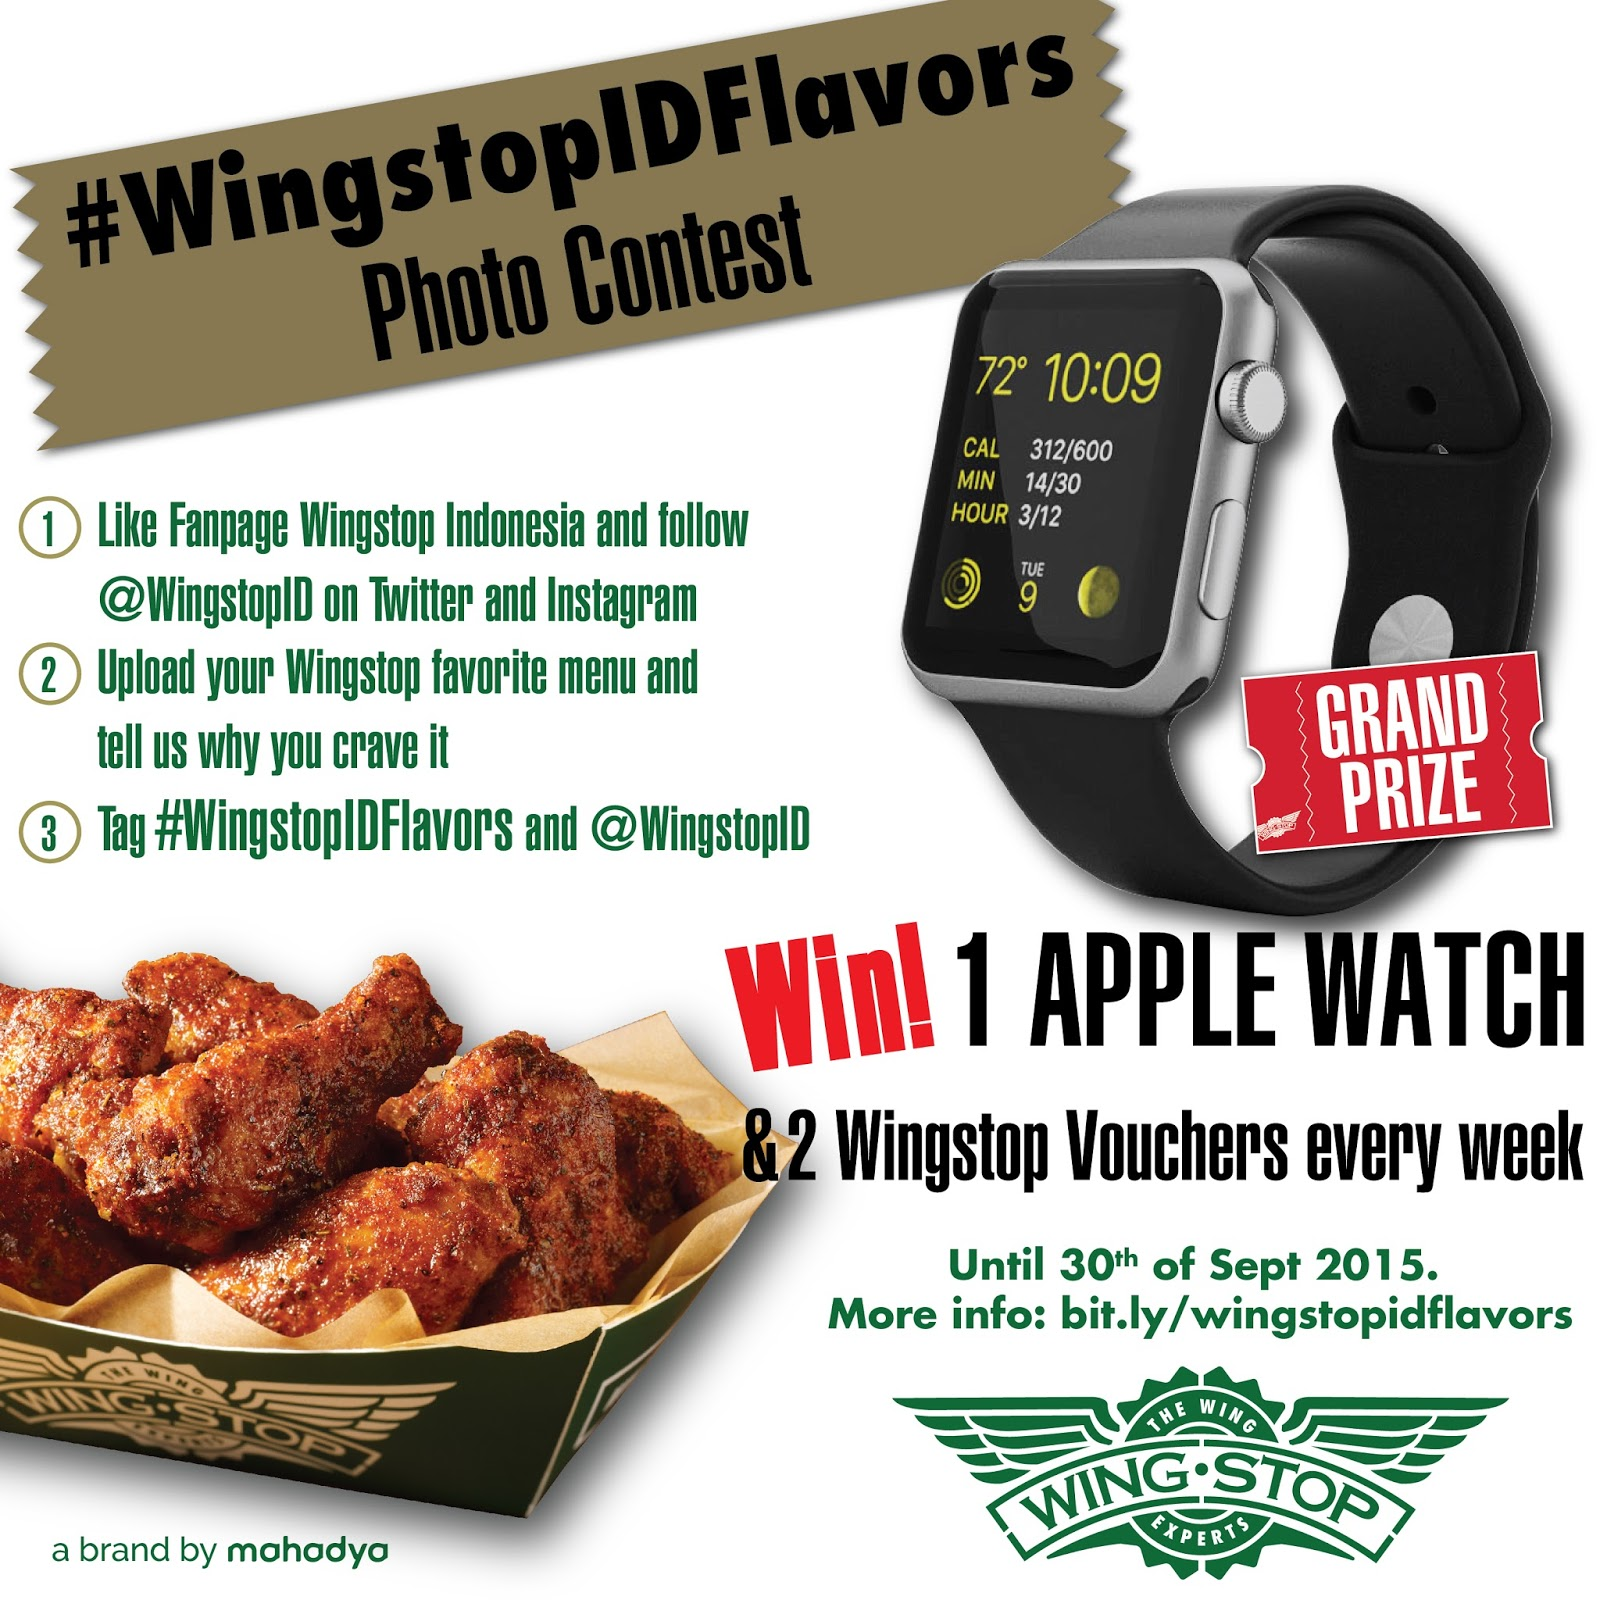 #WingstopIDFlavors Photo Contest